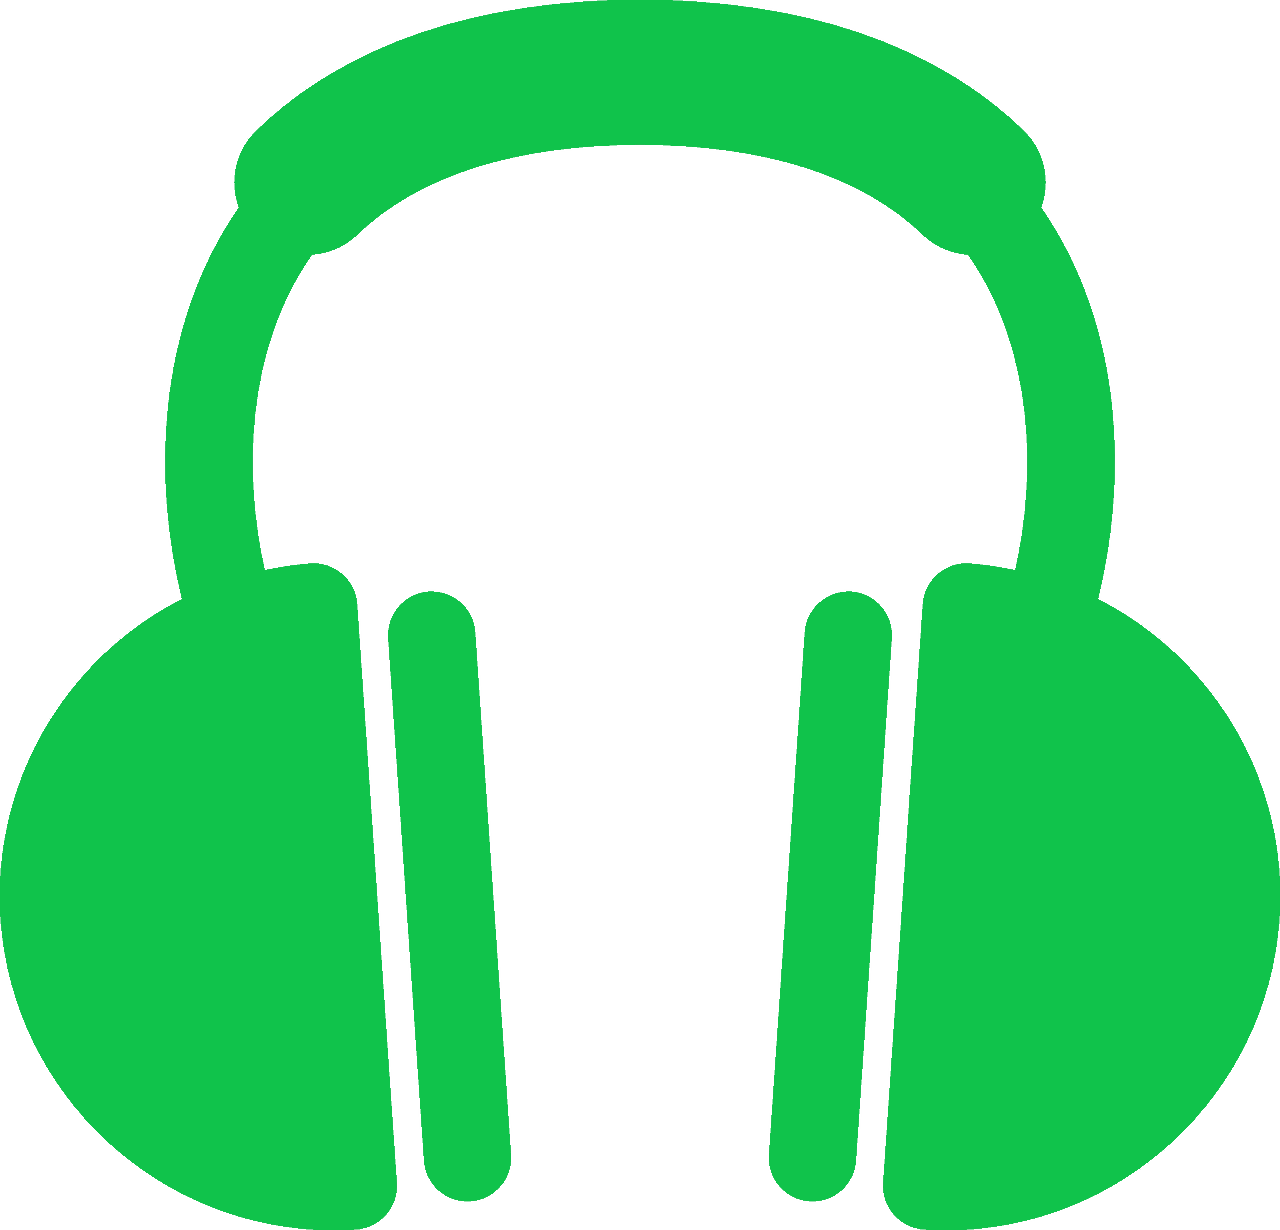 Headphone clipart stereo. Just drum sounds the